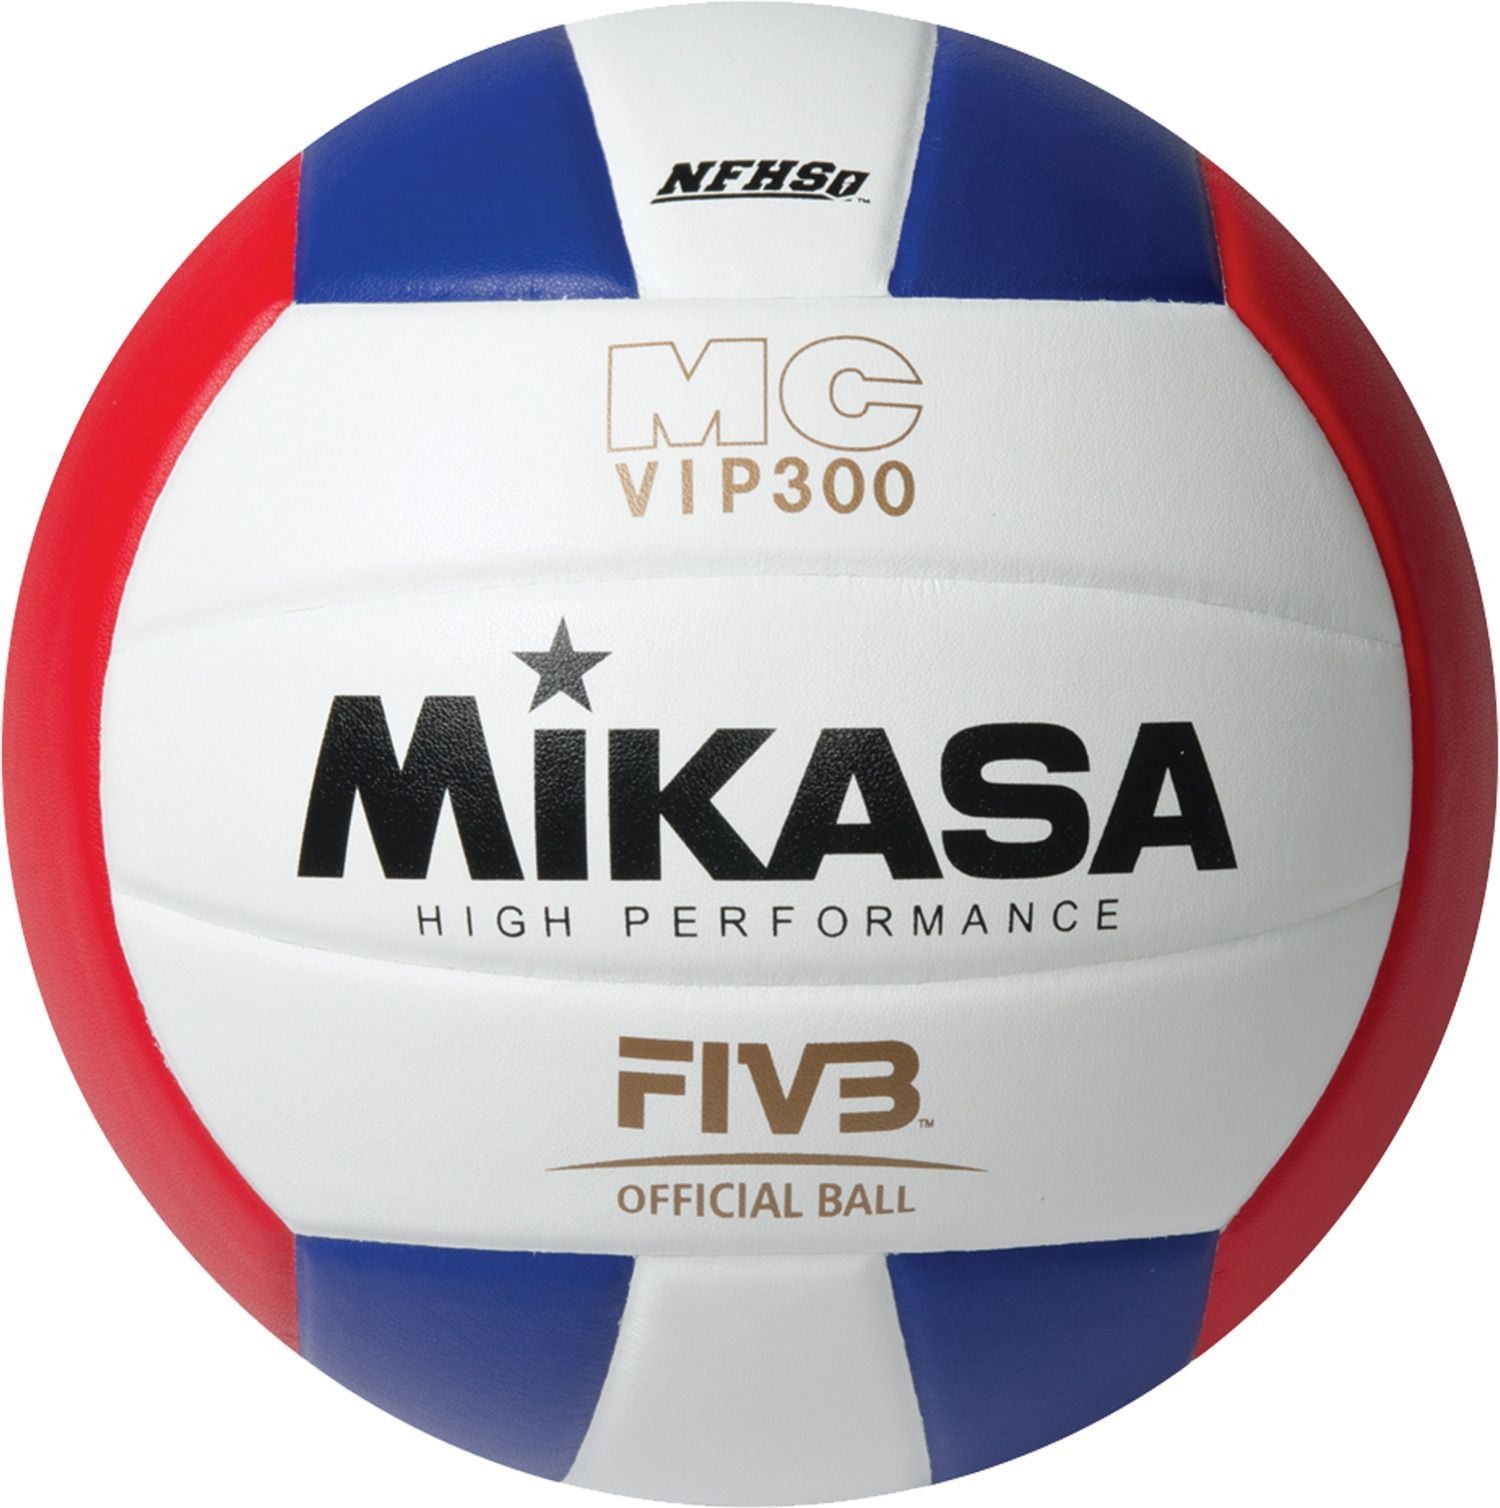 Mikasa High Performance Indoor Volleyball In 2020 Indoor Volleyball Volleyball High Performance